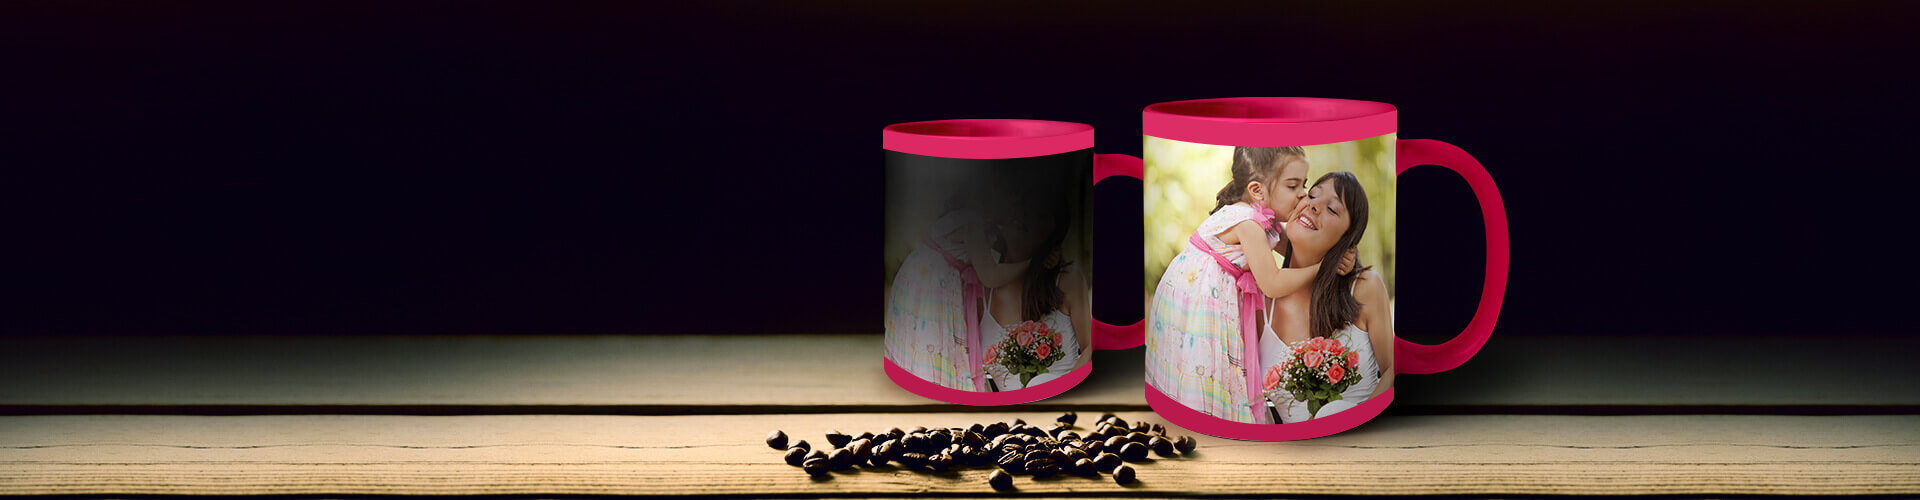 Promote Happiness Every Morning With Photo Magic Mugs!